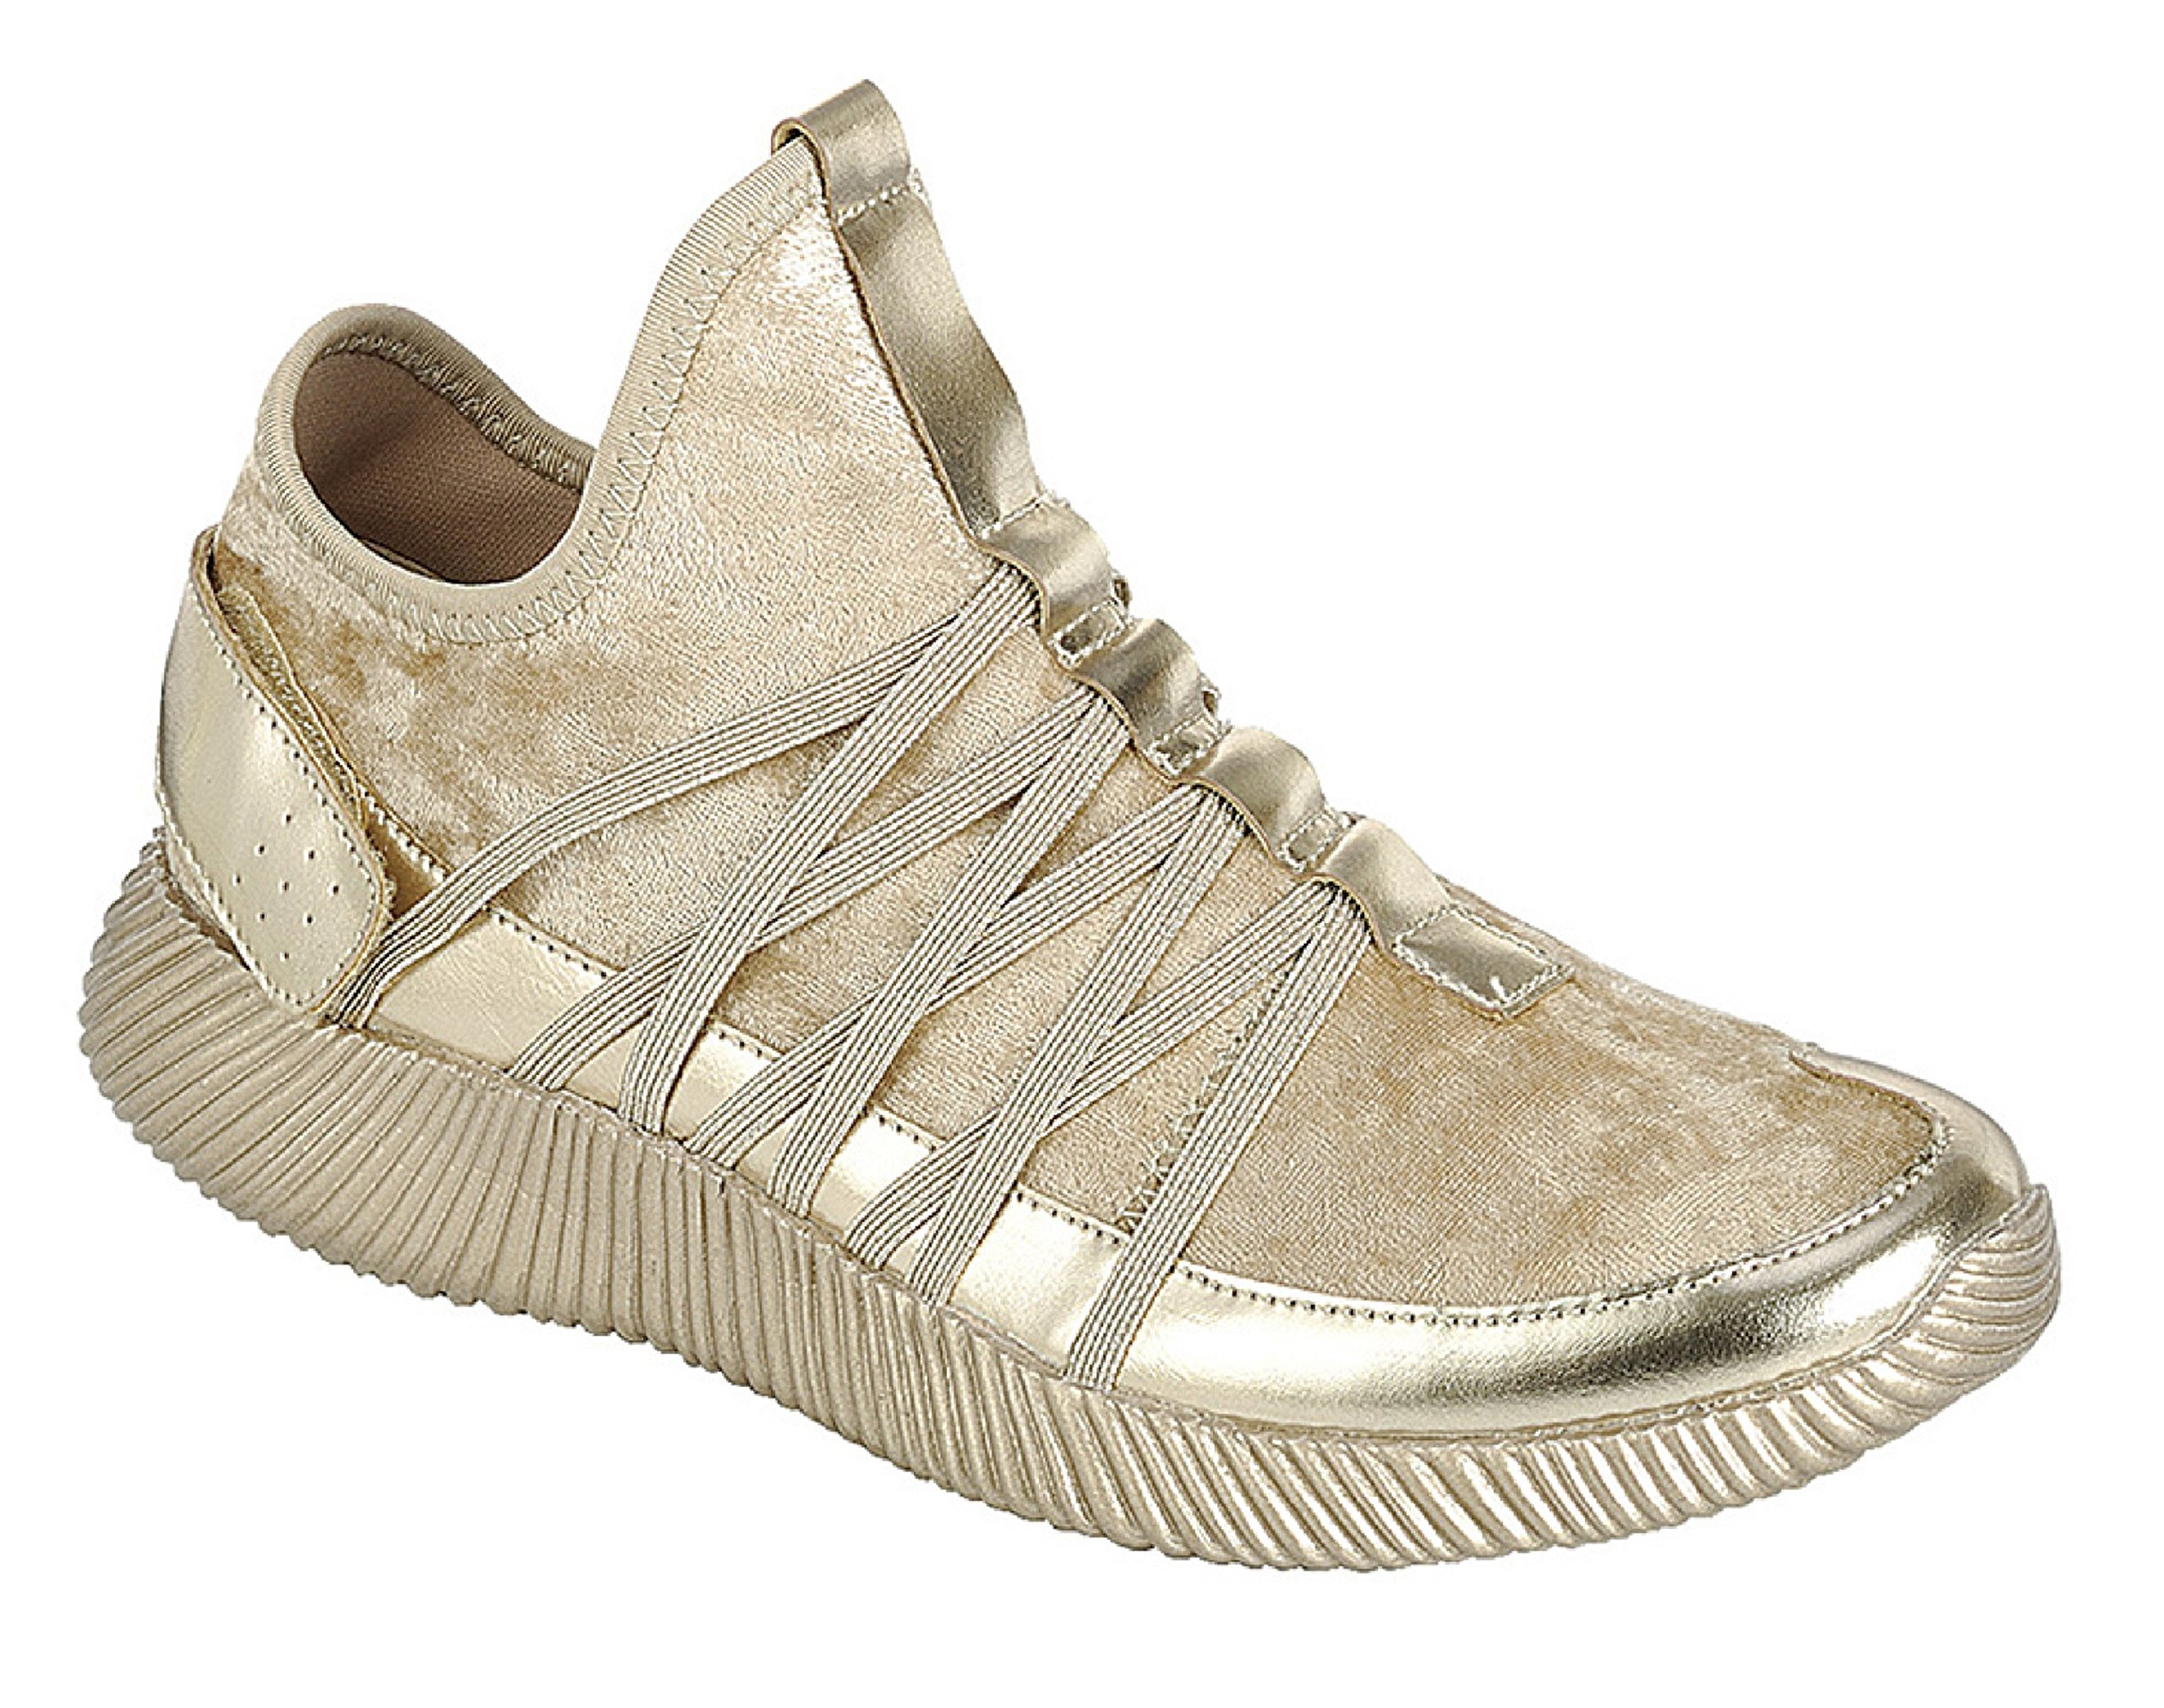 Lizzy Prime Gold Glitter Metallic Wide Easy Slip On Fun Nice Comfort Outdoor Business Casual Sport Athletic Tenny Gym Canvas Sneaker Shoe for Women Ladies (7, Gold)